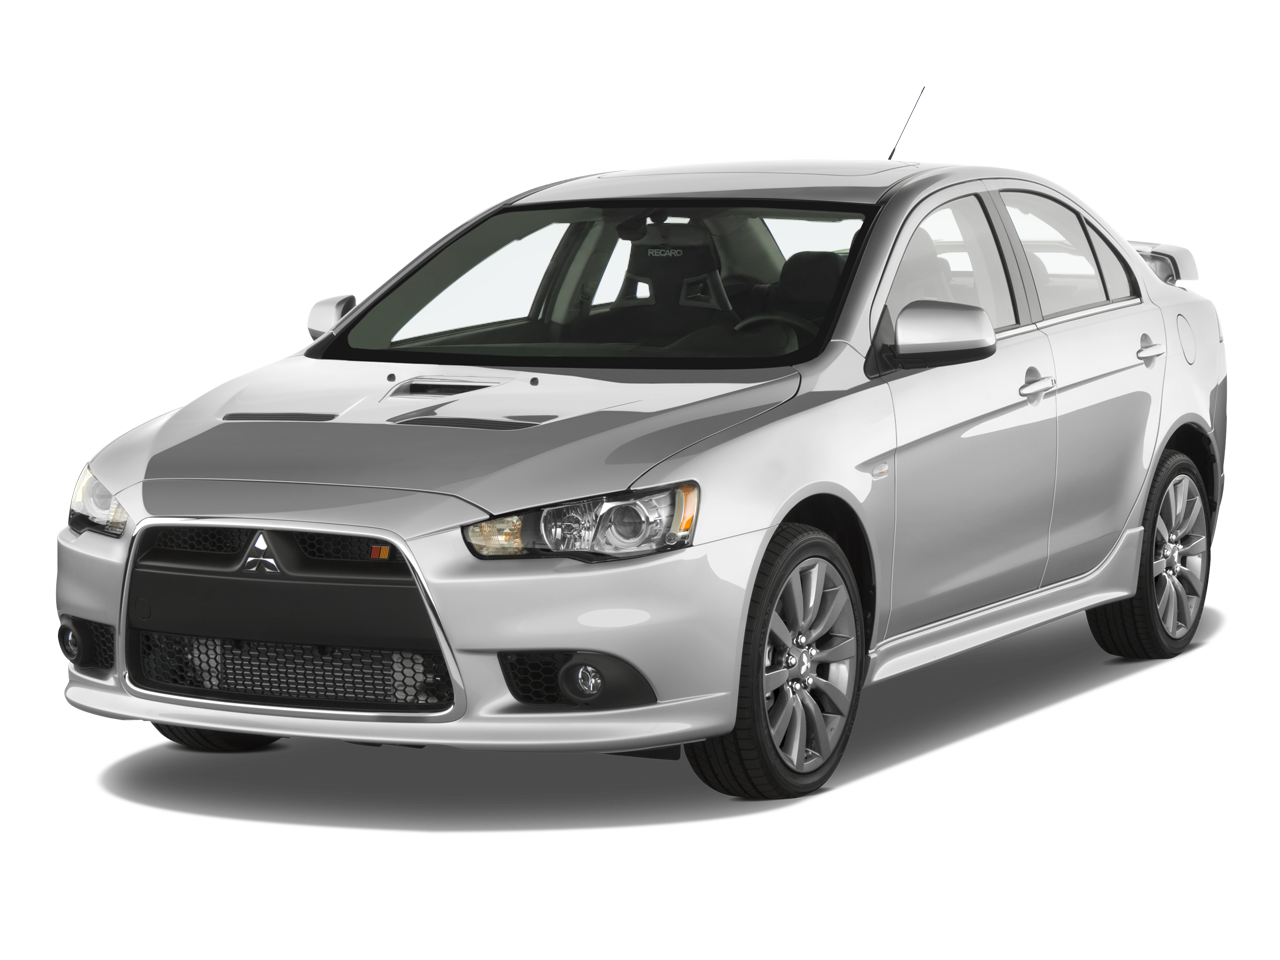 2009 Mitsubishi Lancer Gts Latest News Features And Reviews Automobile Magazine